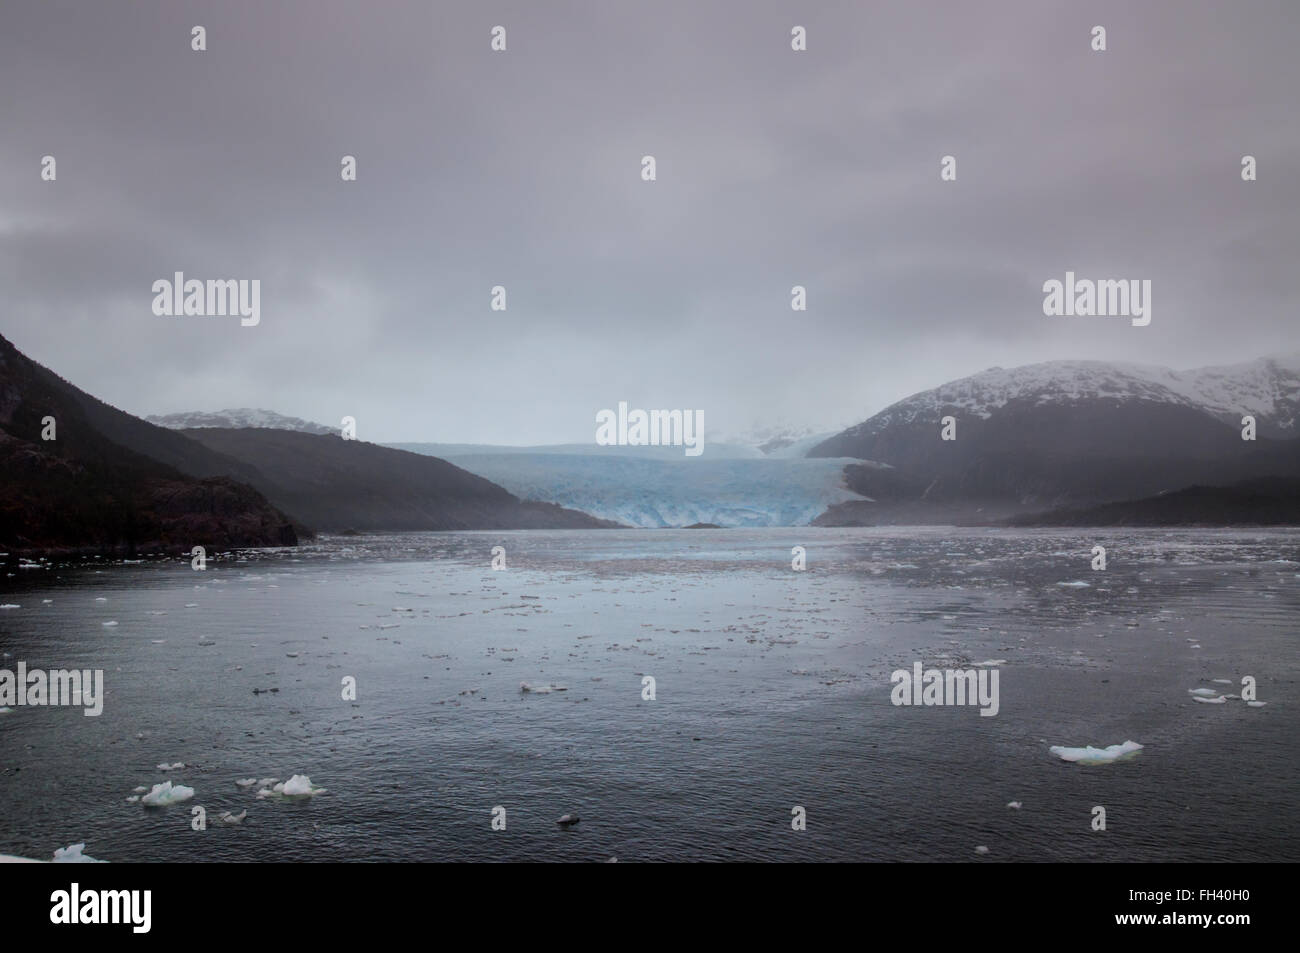 Amalia Glacier on the edge of the Sarmiento Channel, Skua Glacier, Bernardo O'Higgins National Park, Chile - Stock Image